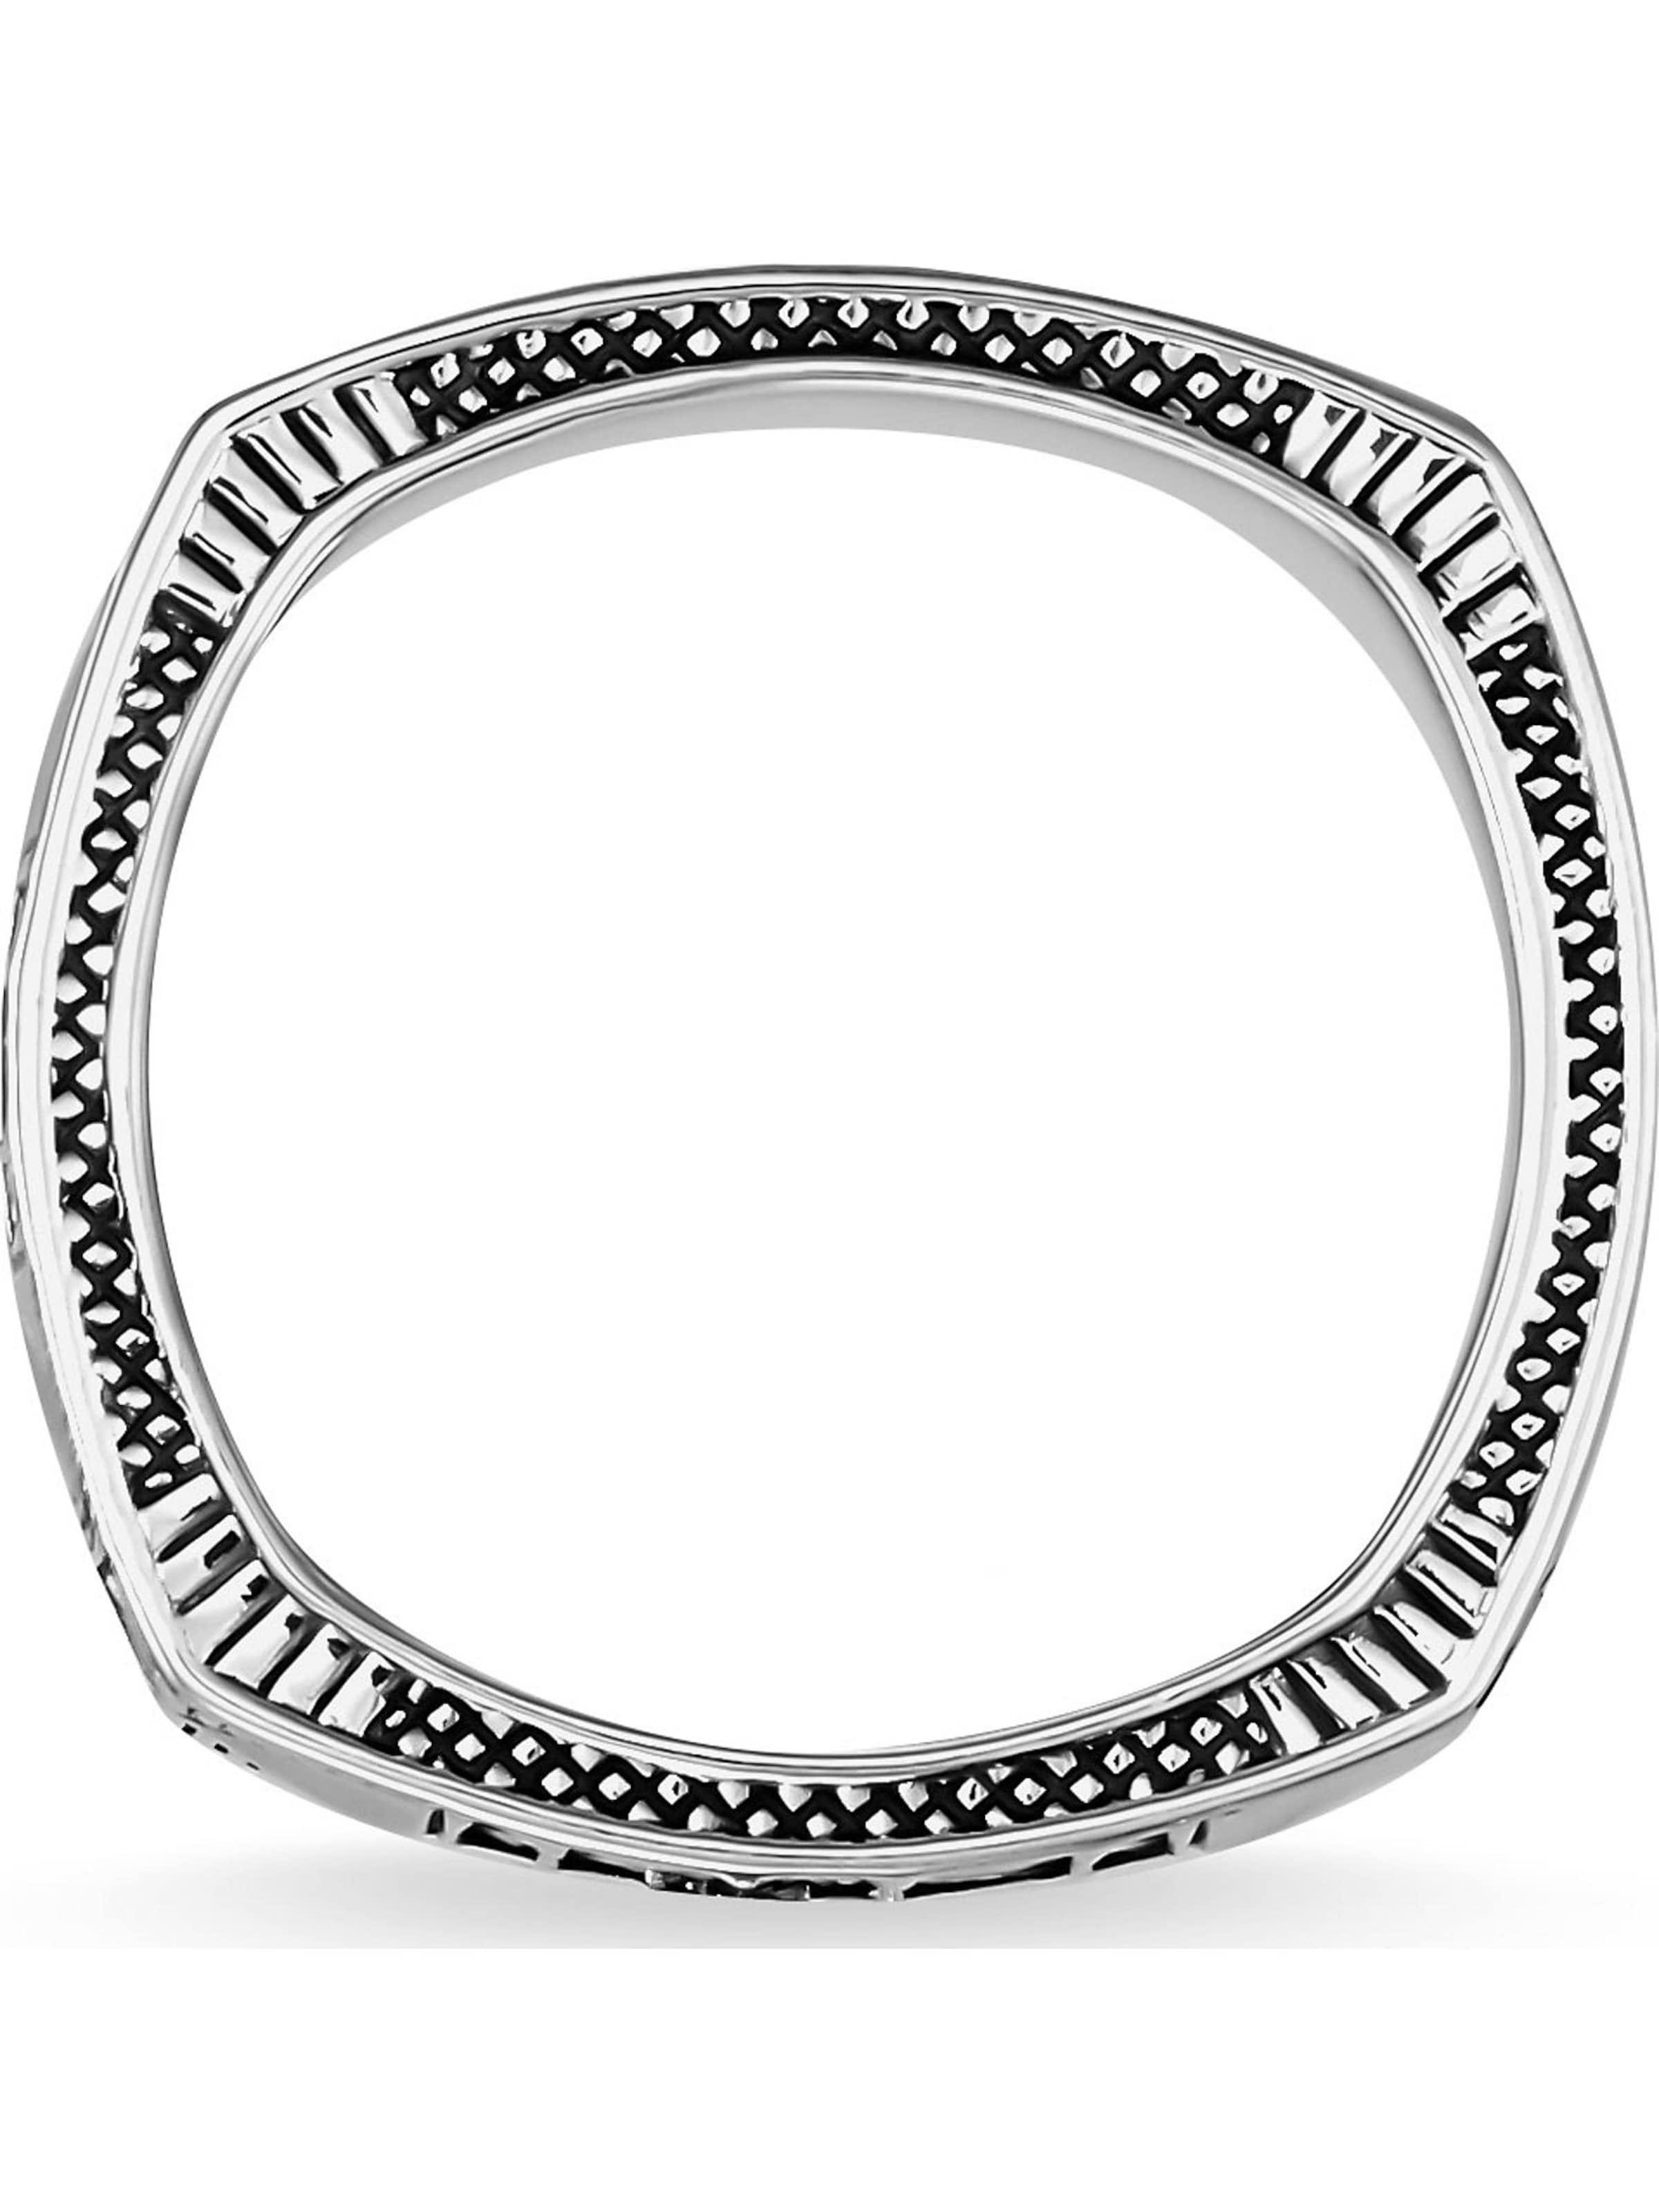 Thomas Sabo In Ring Ring Thomas In Sabo Sabo Silber Thomas Silber PNwOZ80nXk